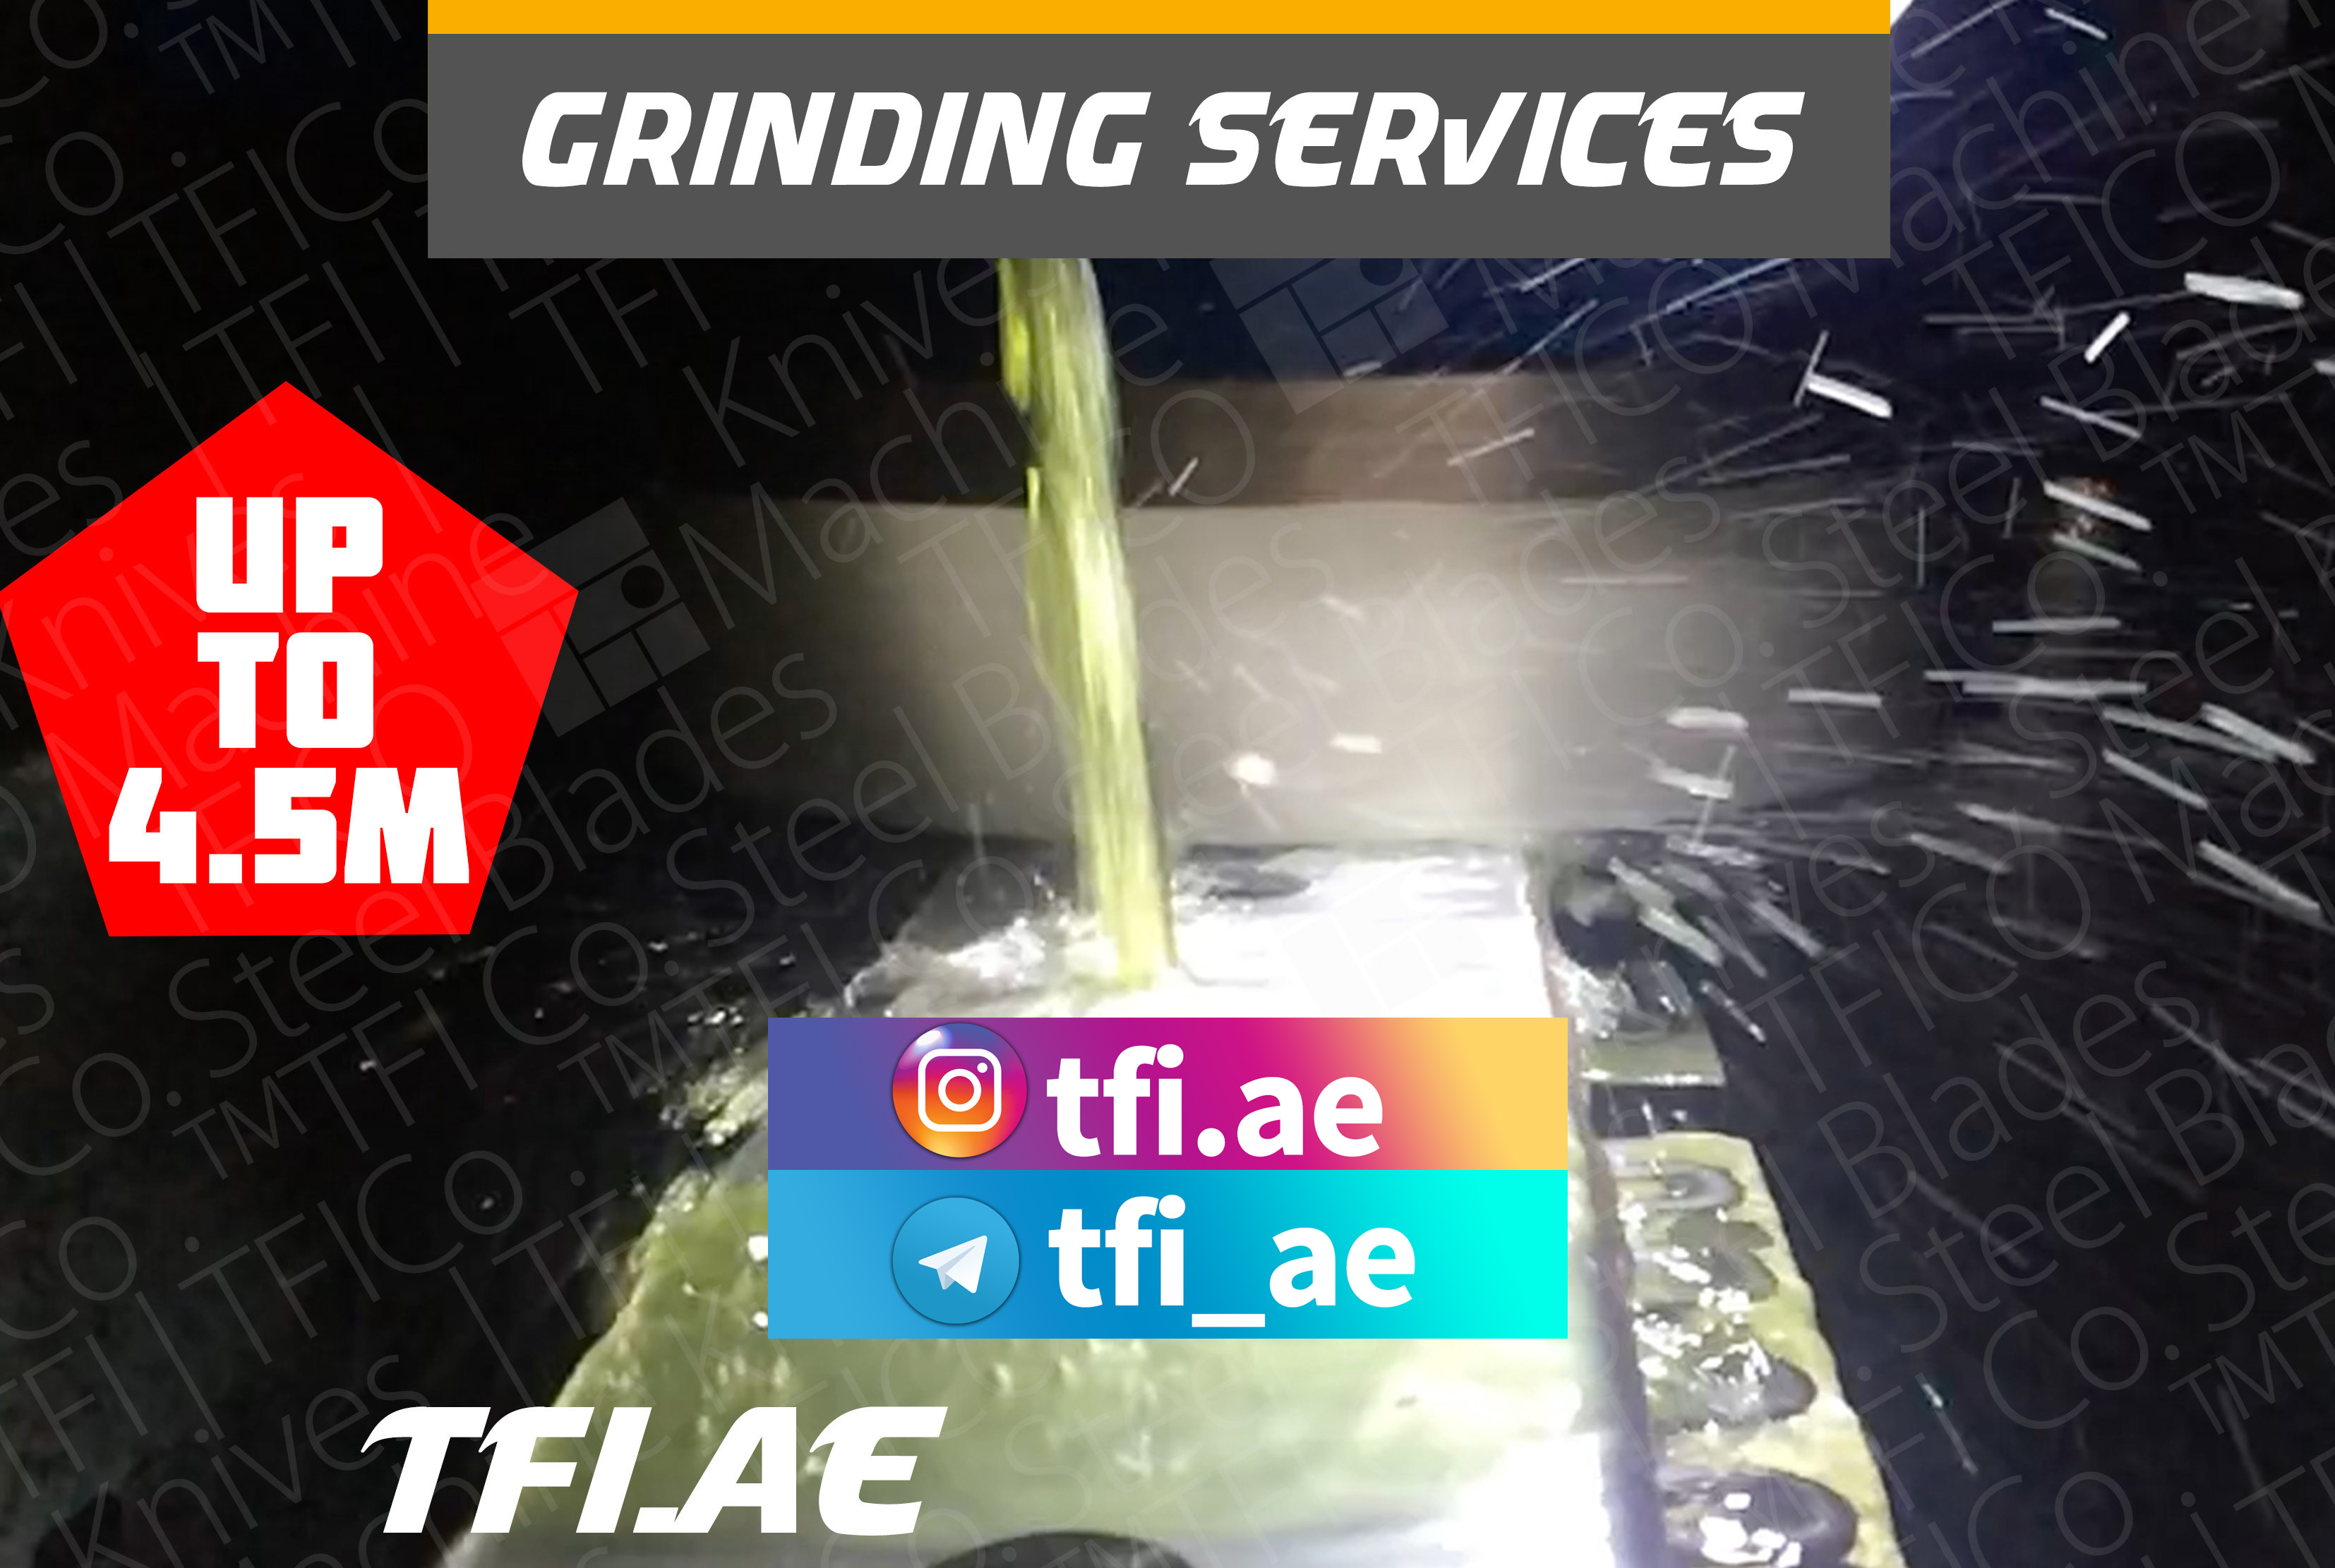 regrinding, surface grinding, grinding , re , sharpening, tools, knives, uae , saudi , oman , qatar, middle east, industrial , tfico